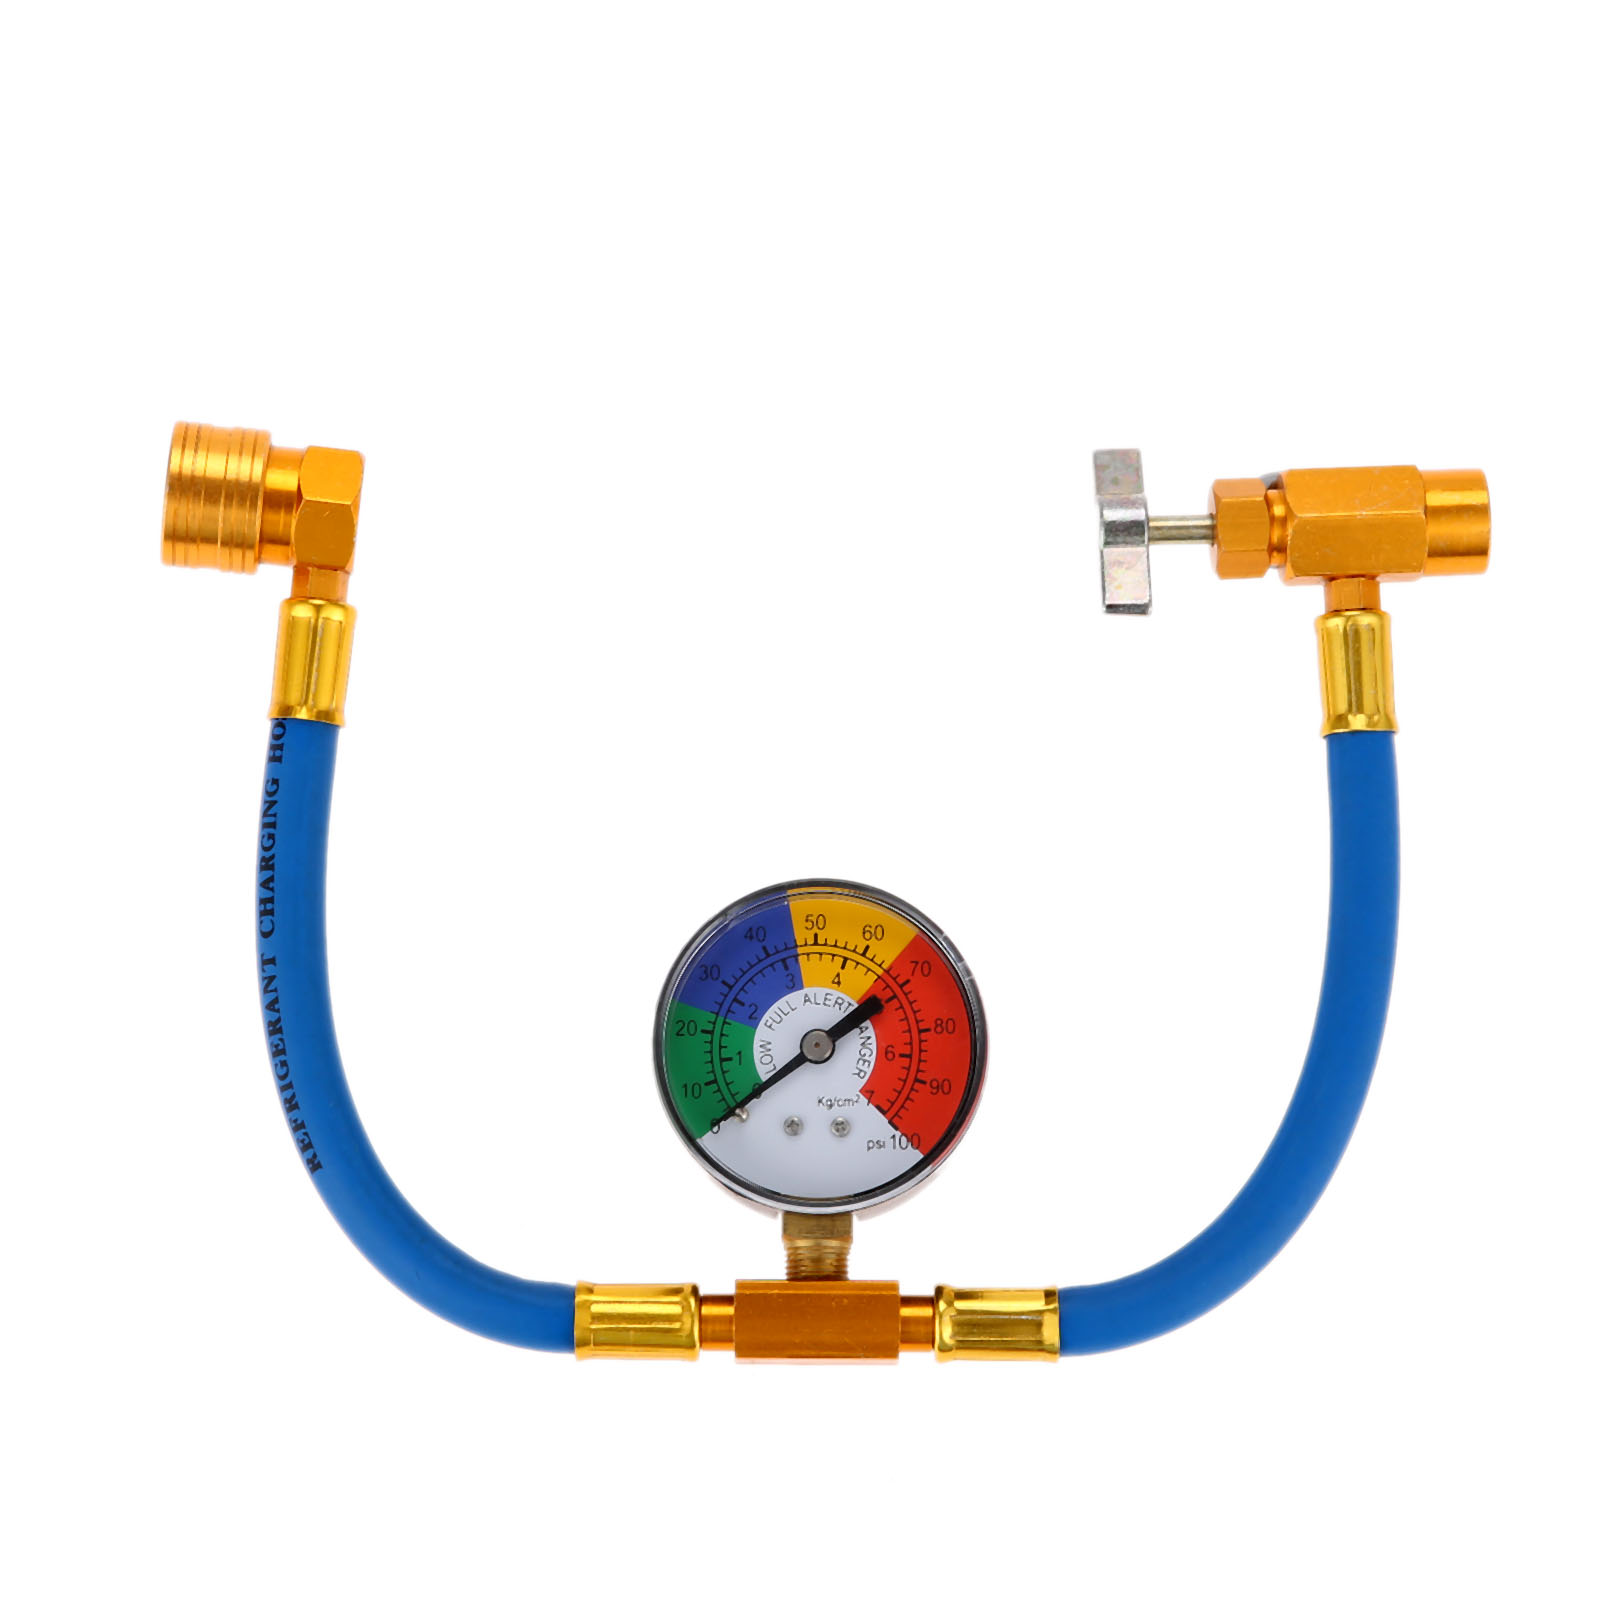 R134a Charging Hose Adapter